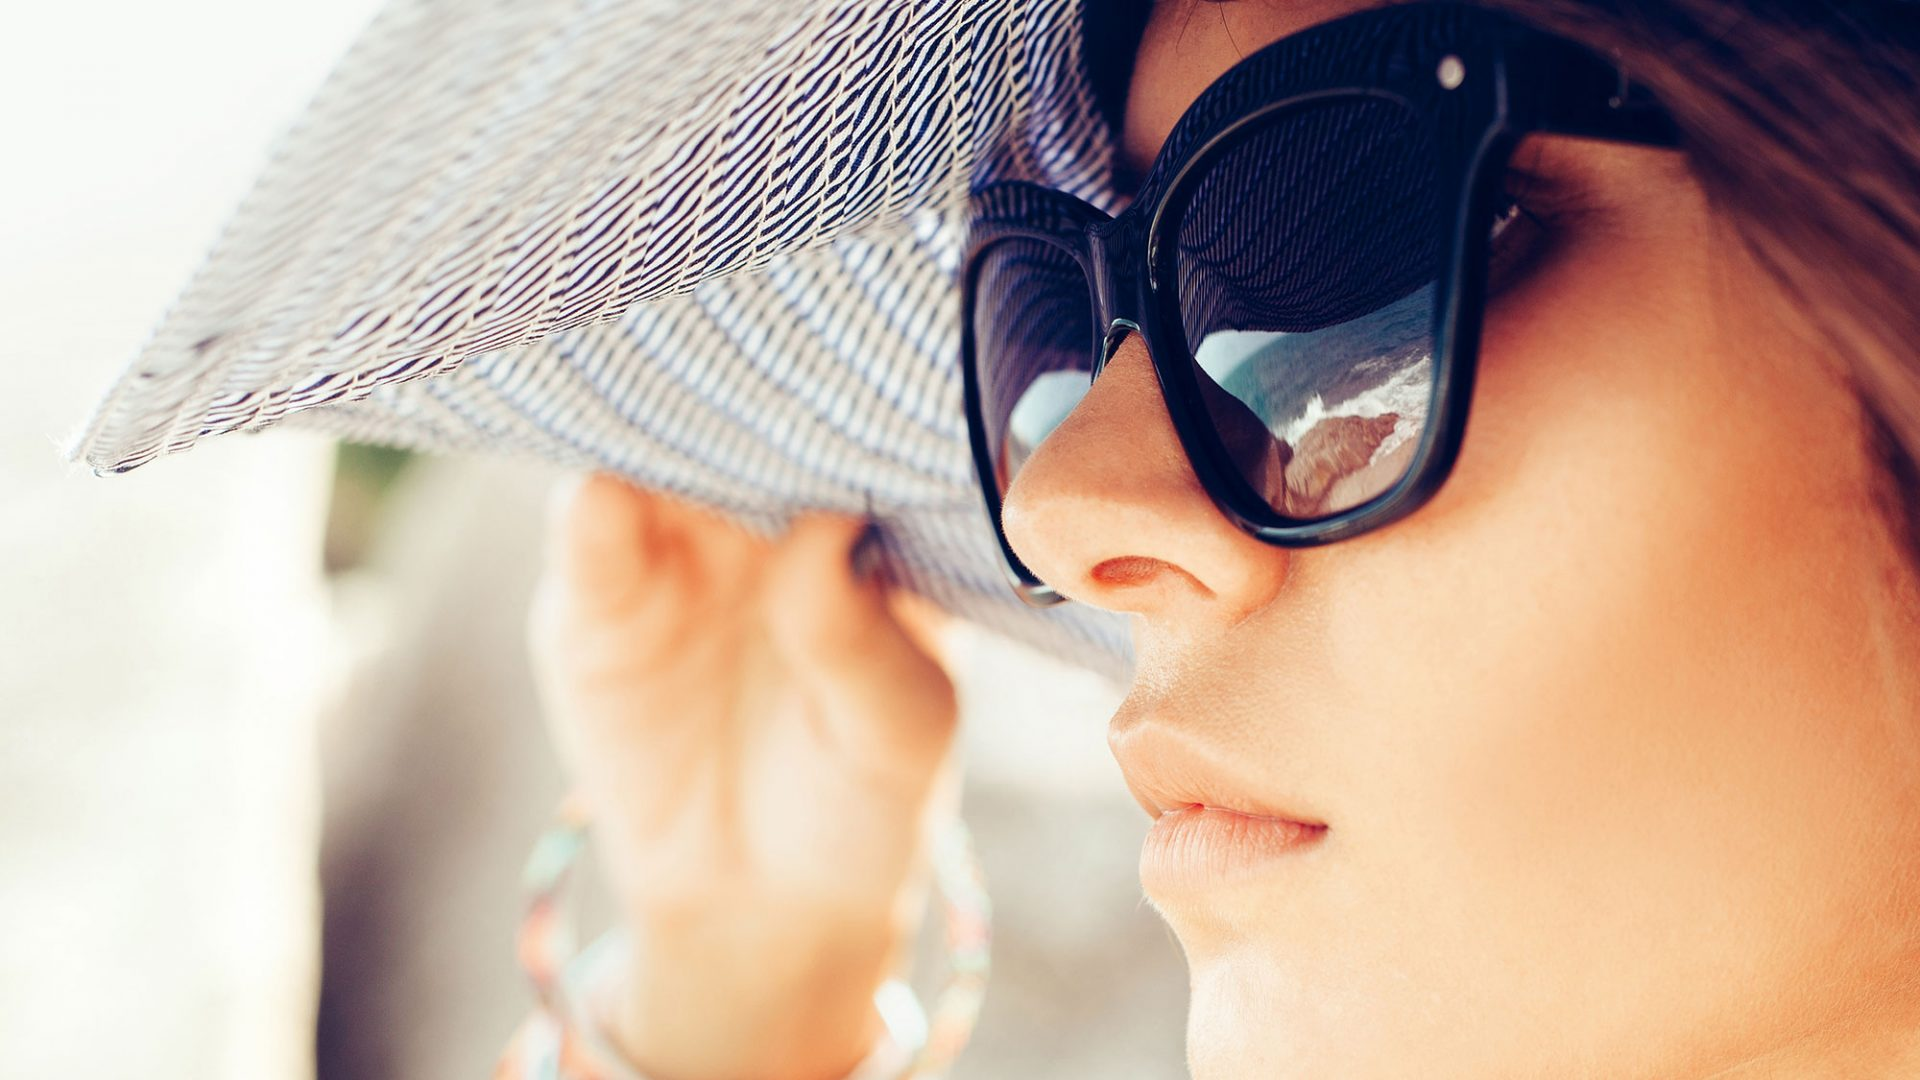 close-up of woman with sunglasses and big floppy hat